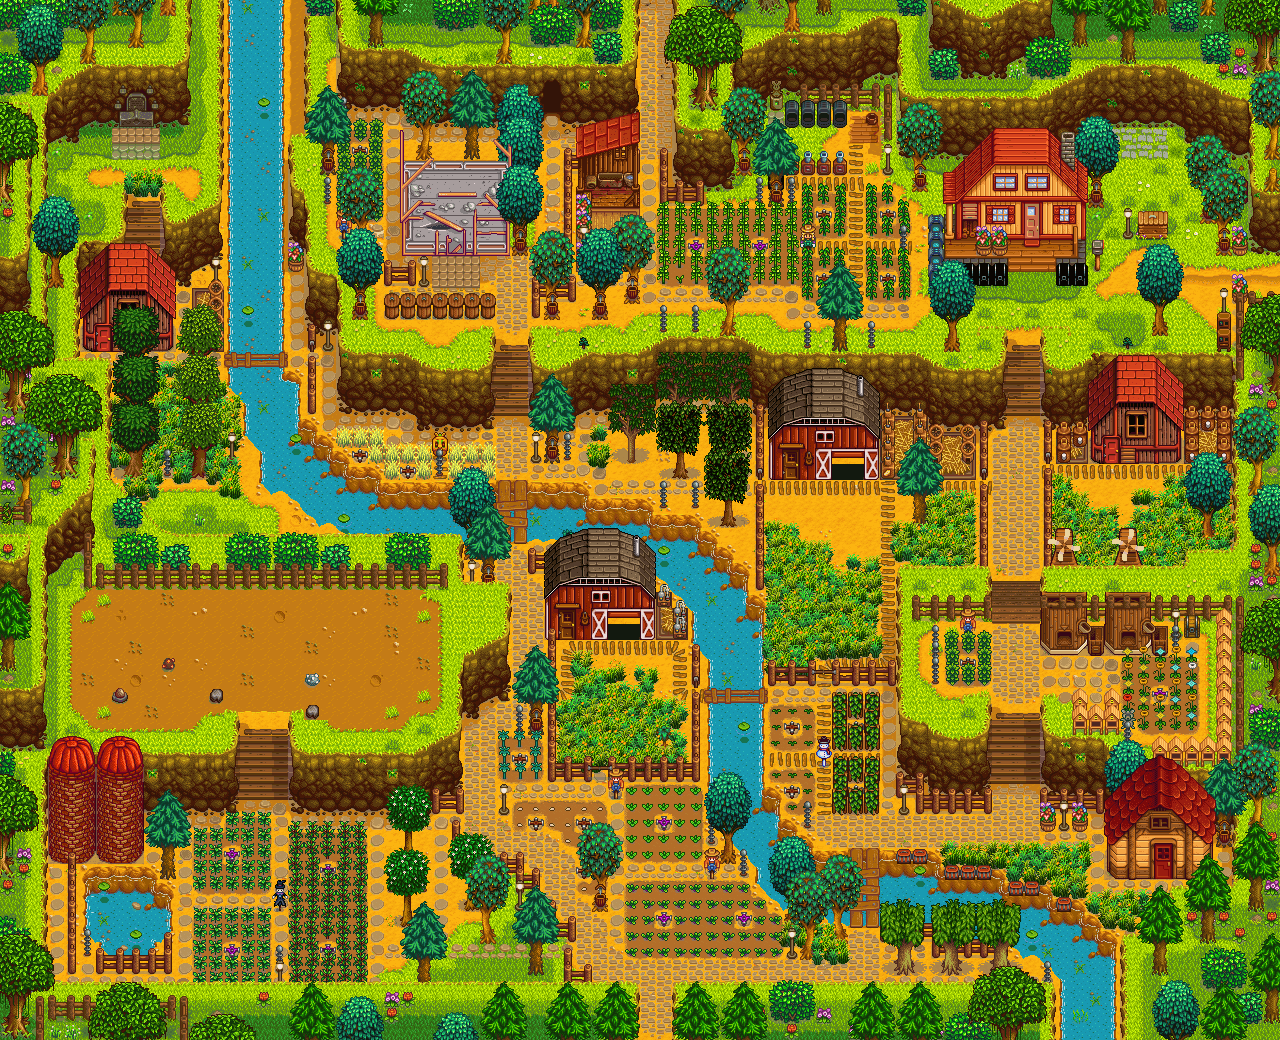 What's Your Preferred Farm? I Can't Decide What To Use In